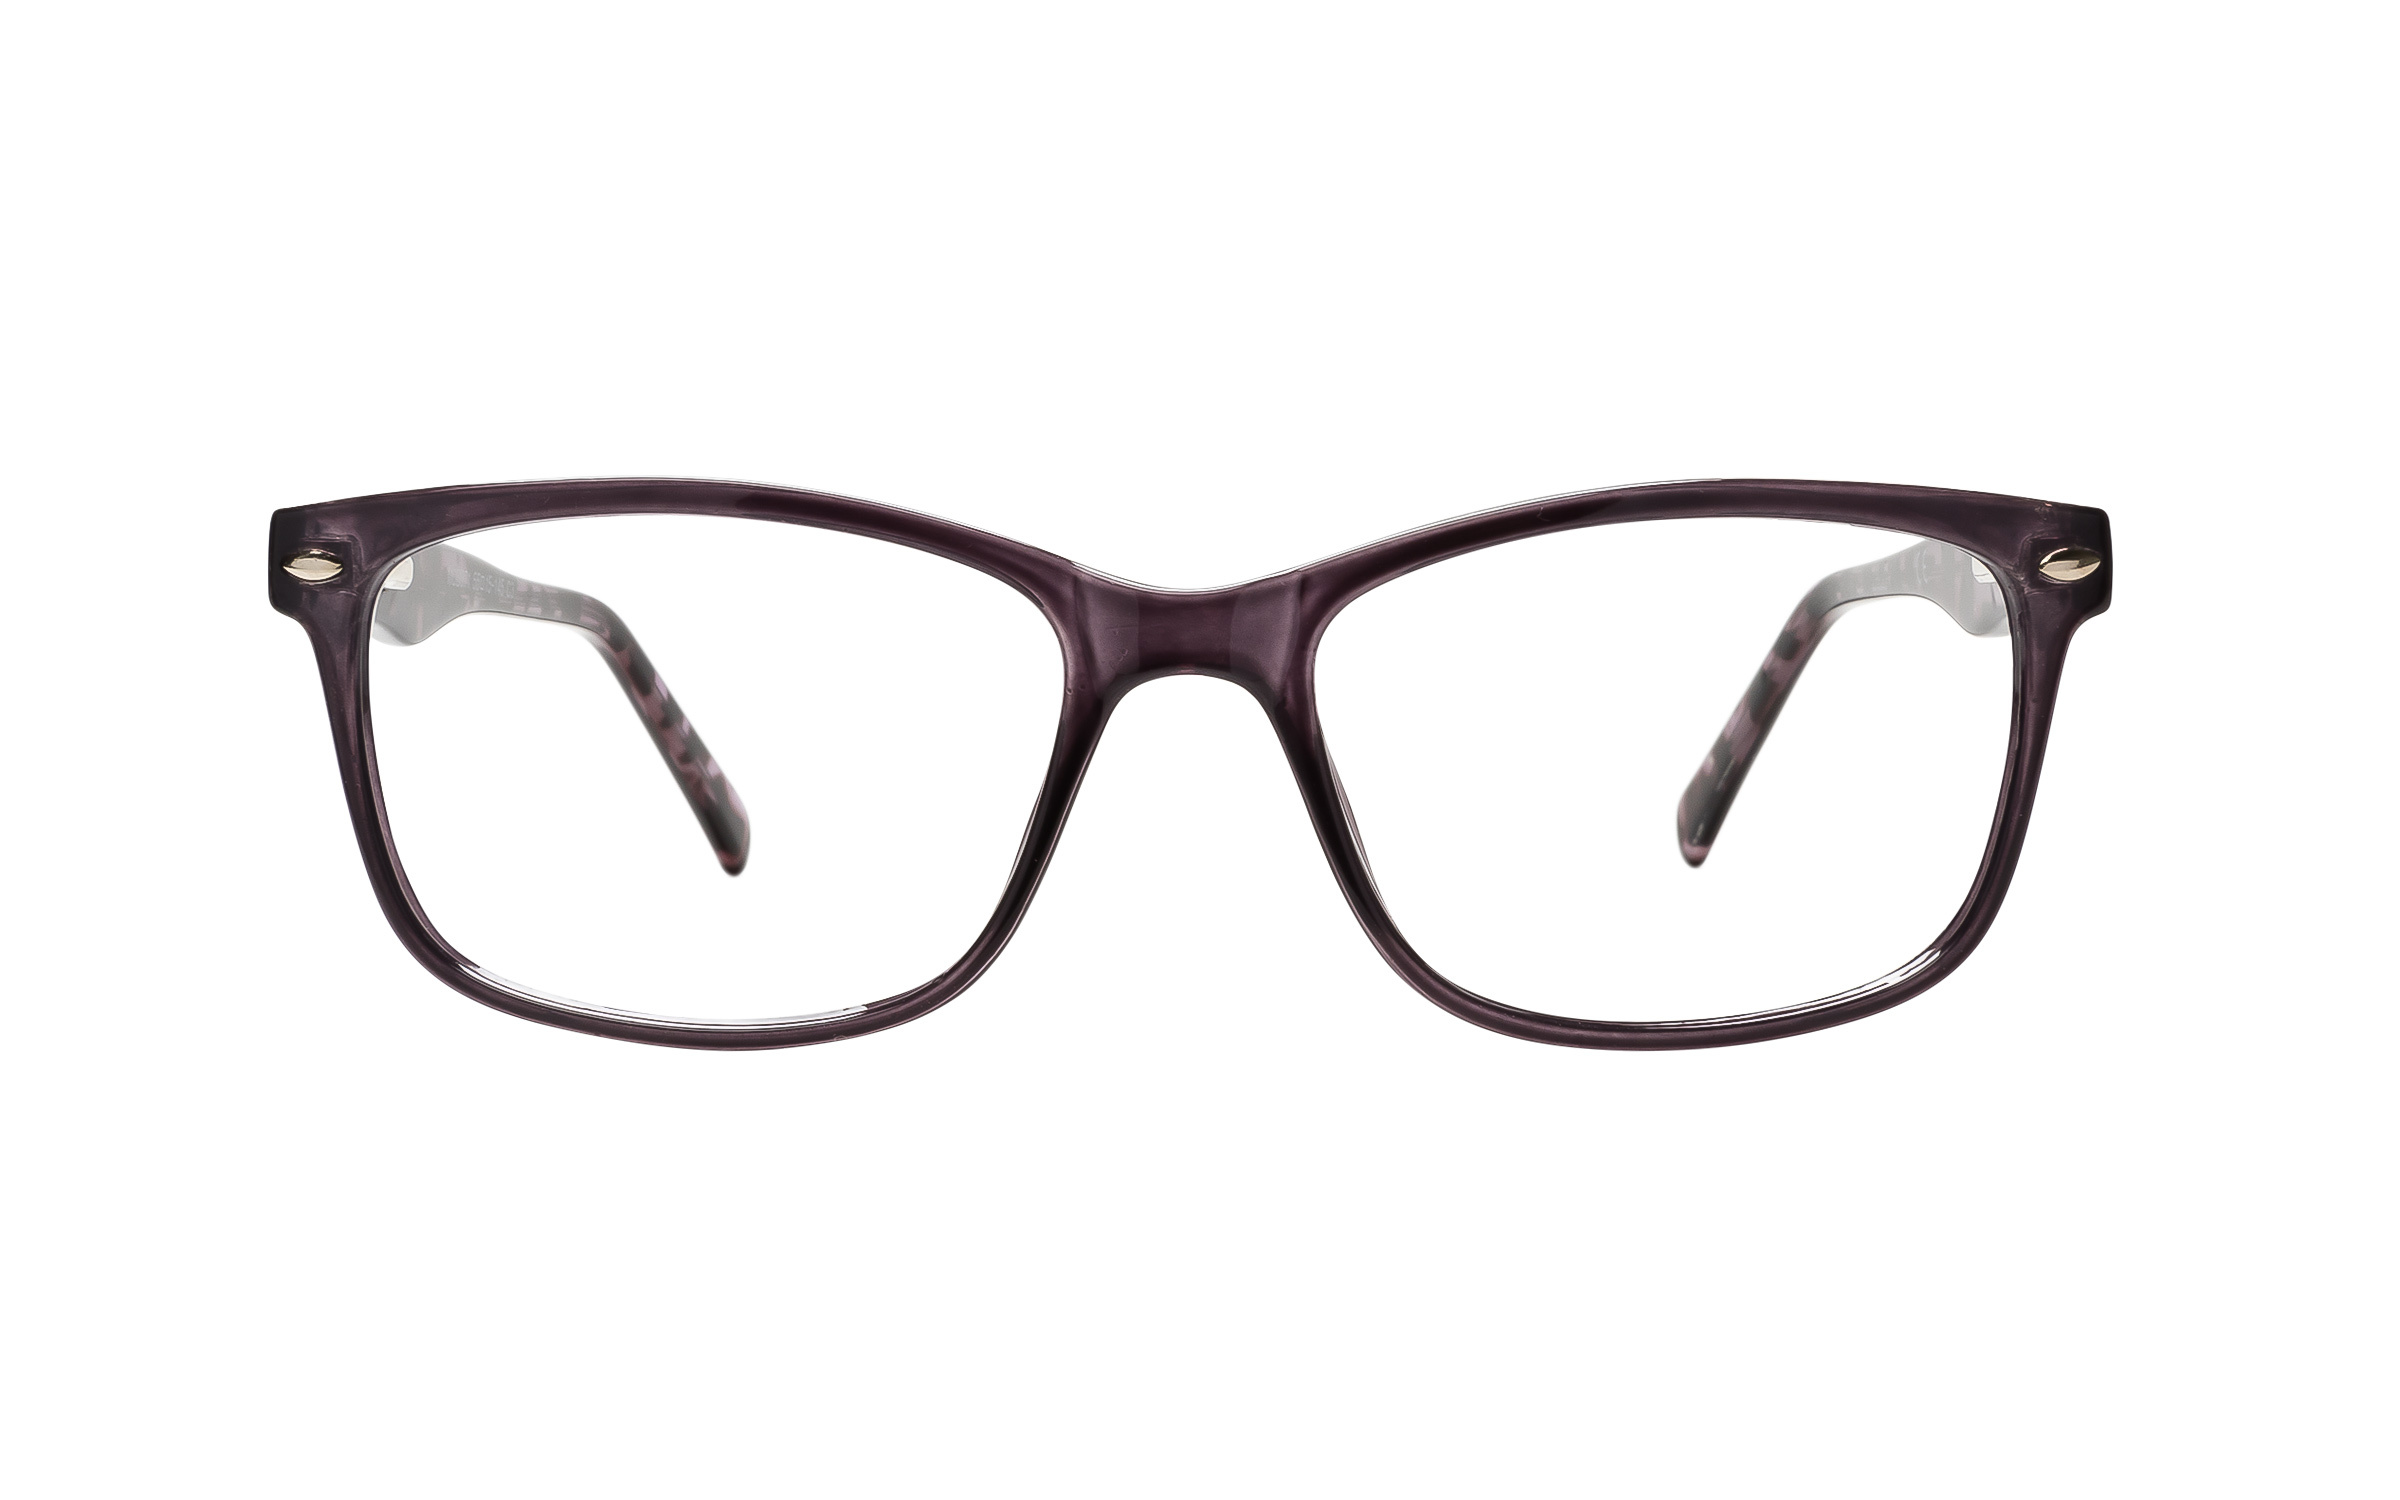 Clearly Basics MOD371 Yarmouth C3 (53) Eyeglasses and Frame in Crystal Grey